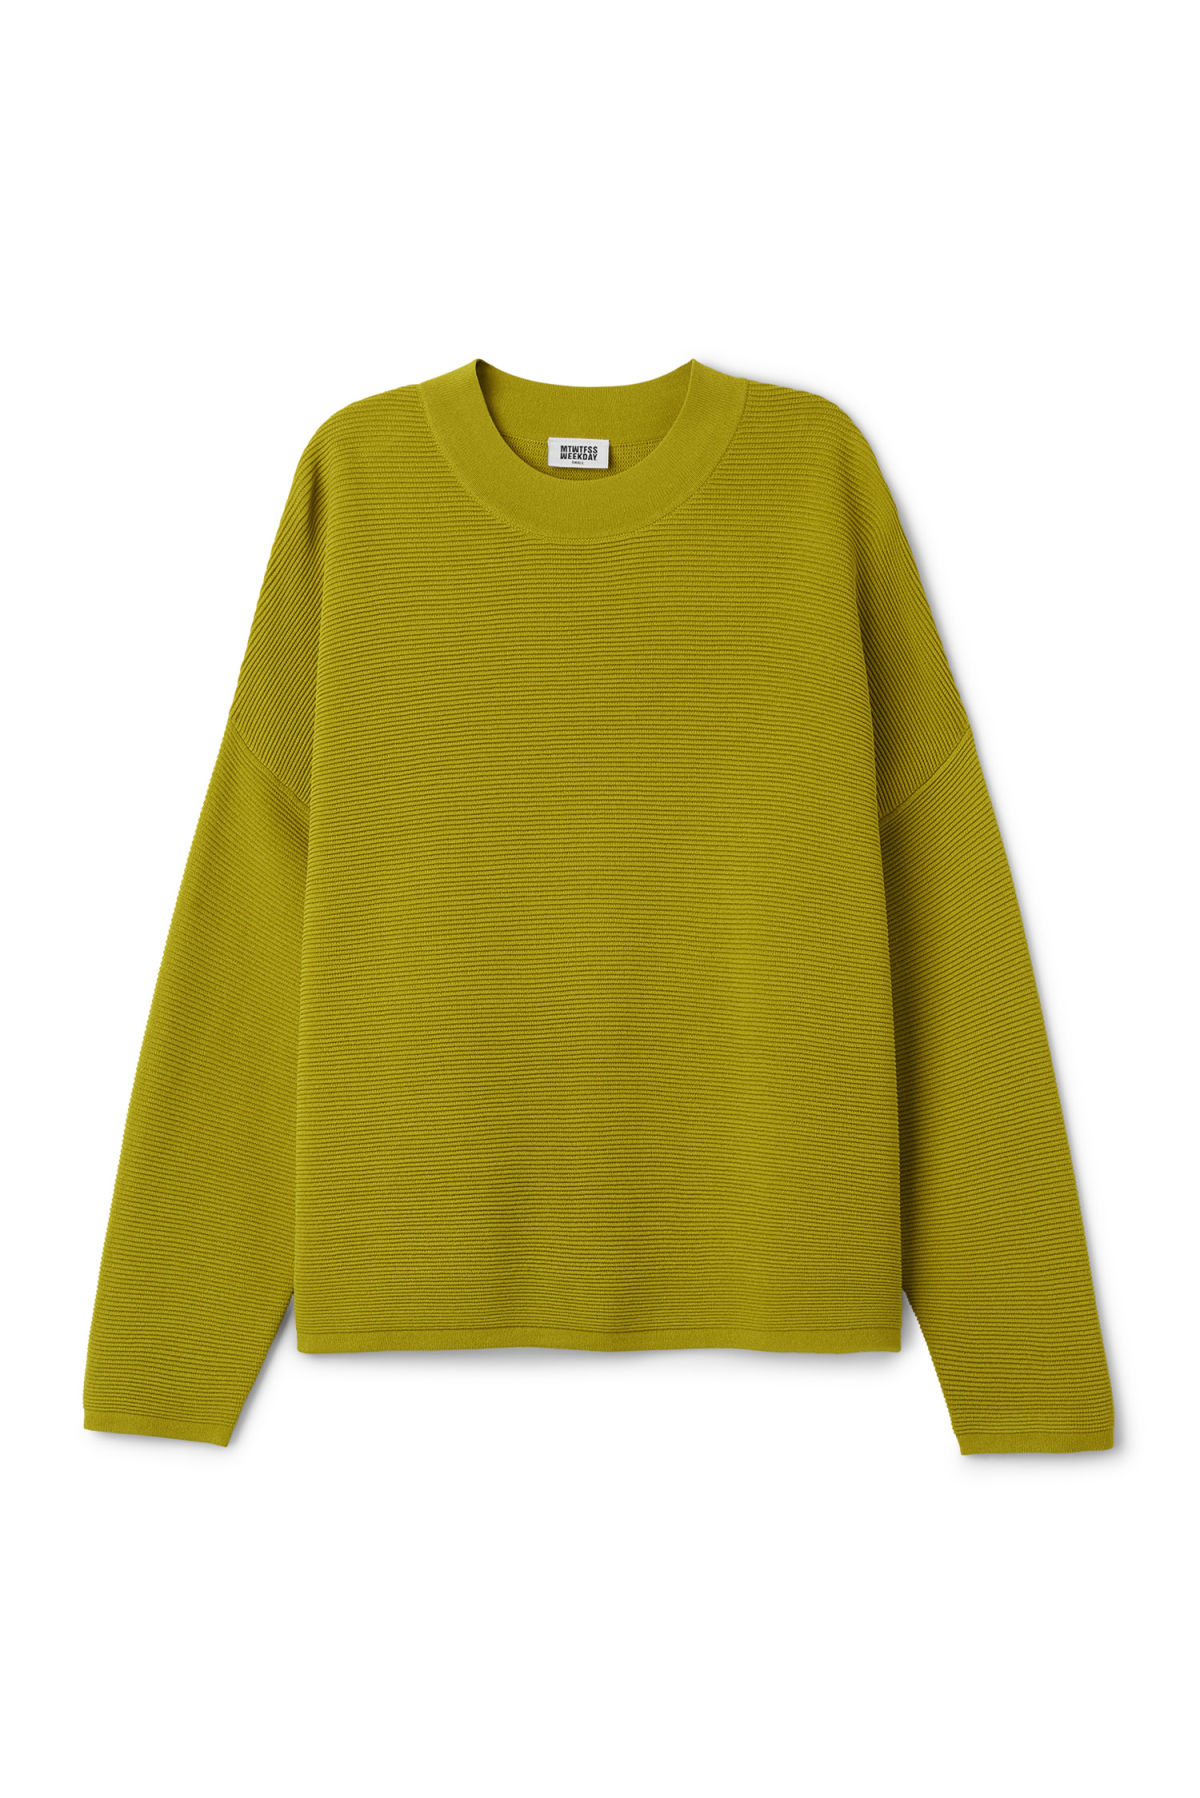 Lea Sweater - Yellow - Knitwear - Weekday